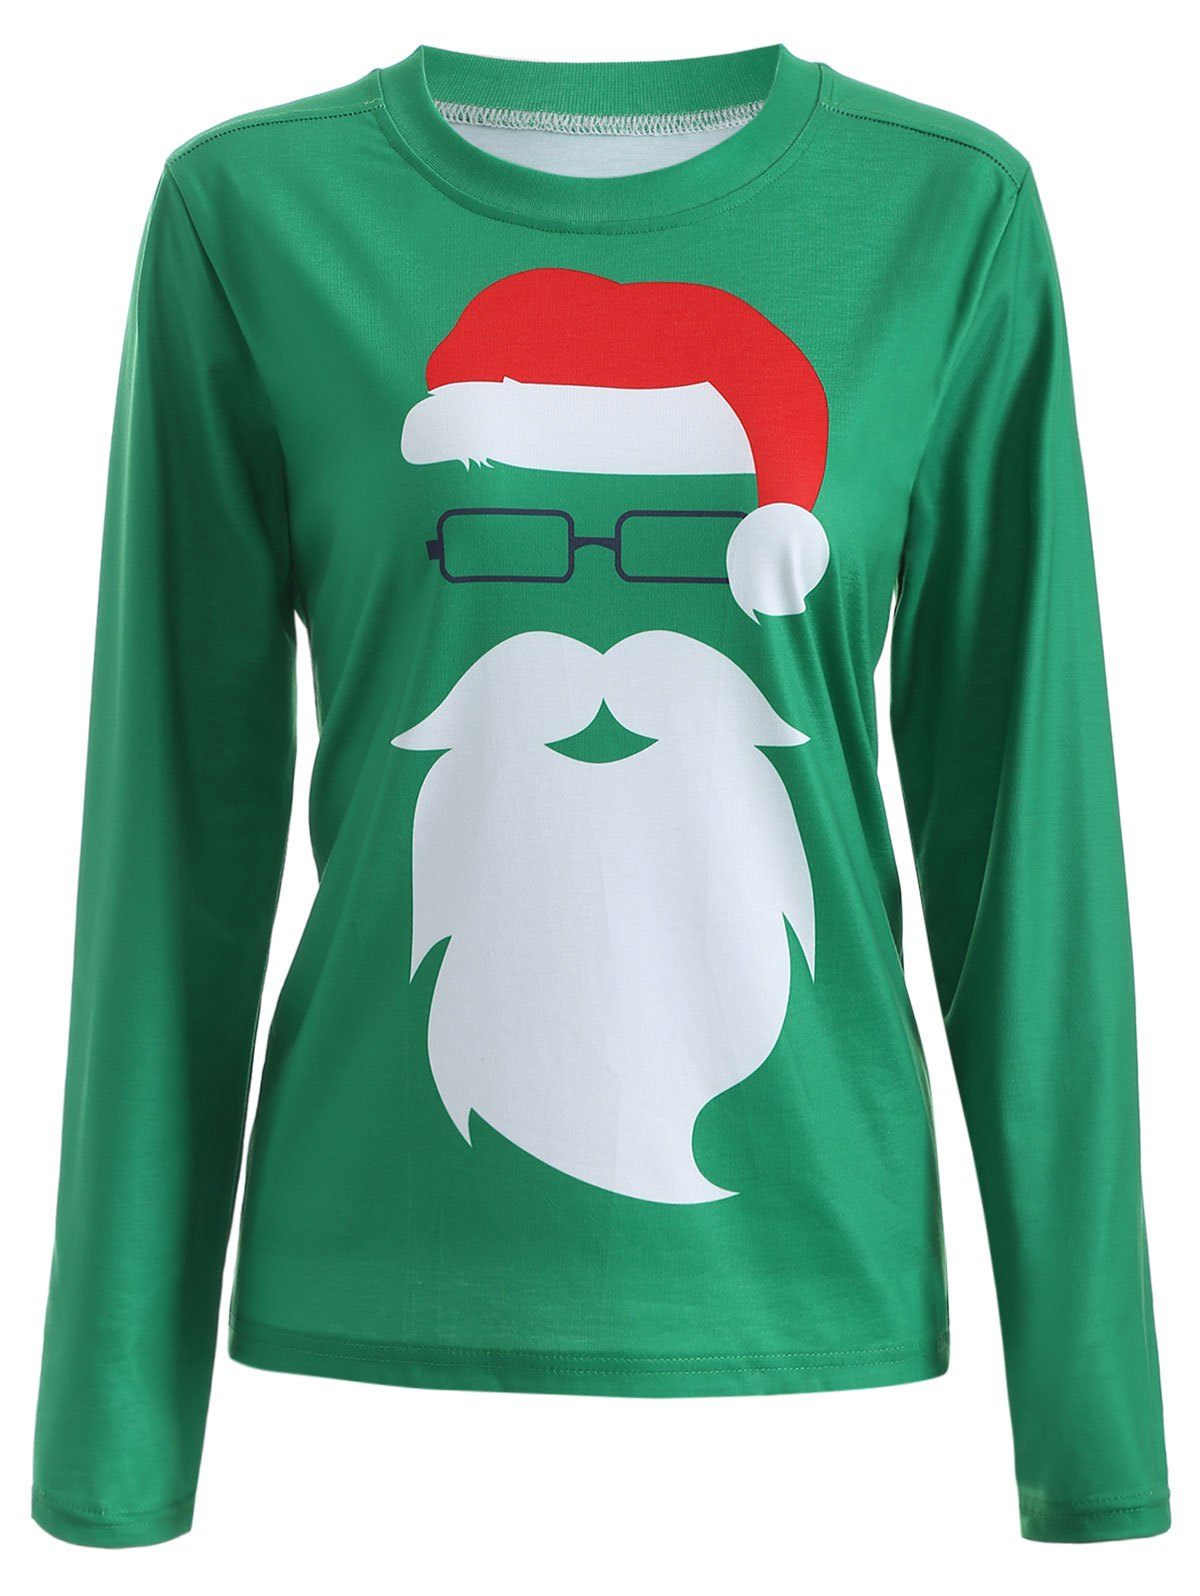 Santa Claus Graphic Christmas Long Sleeve T-ShirtWOMEN<br><br>Size: XL; Color: GREEN; Material: Polyester; Sleeve Length: Full; Collar: Round Neck; Style: Fashion; Pattern Type: Print; Season: Fall,Spring; Weight: 0.320kg; Package Contents: 1 x T-Shirt;